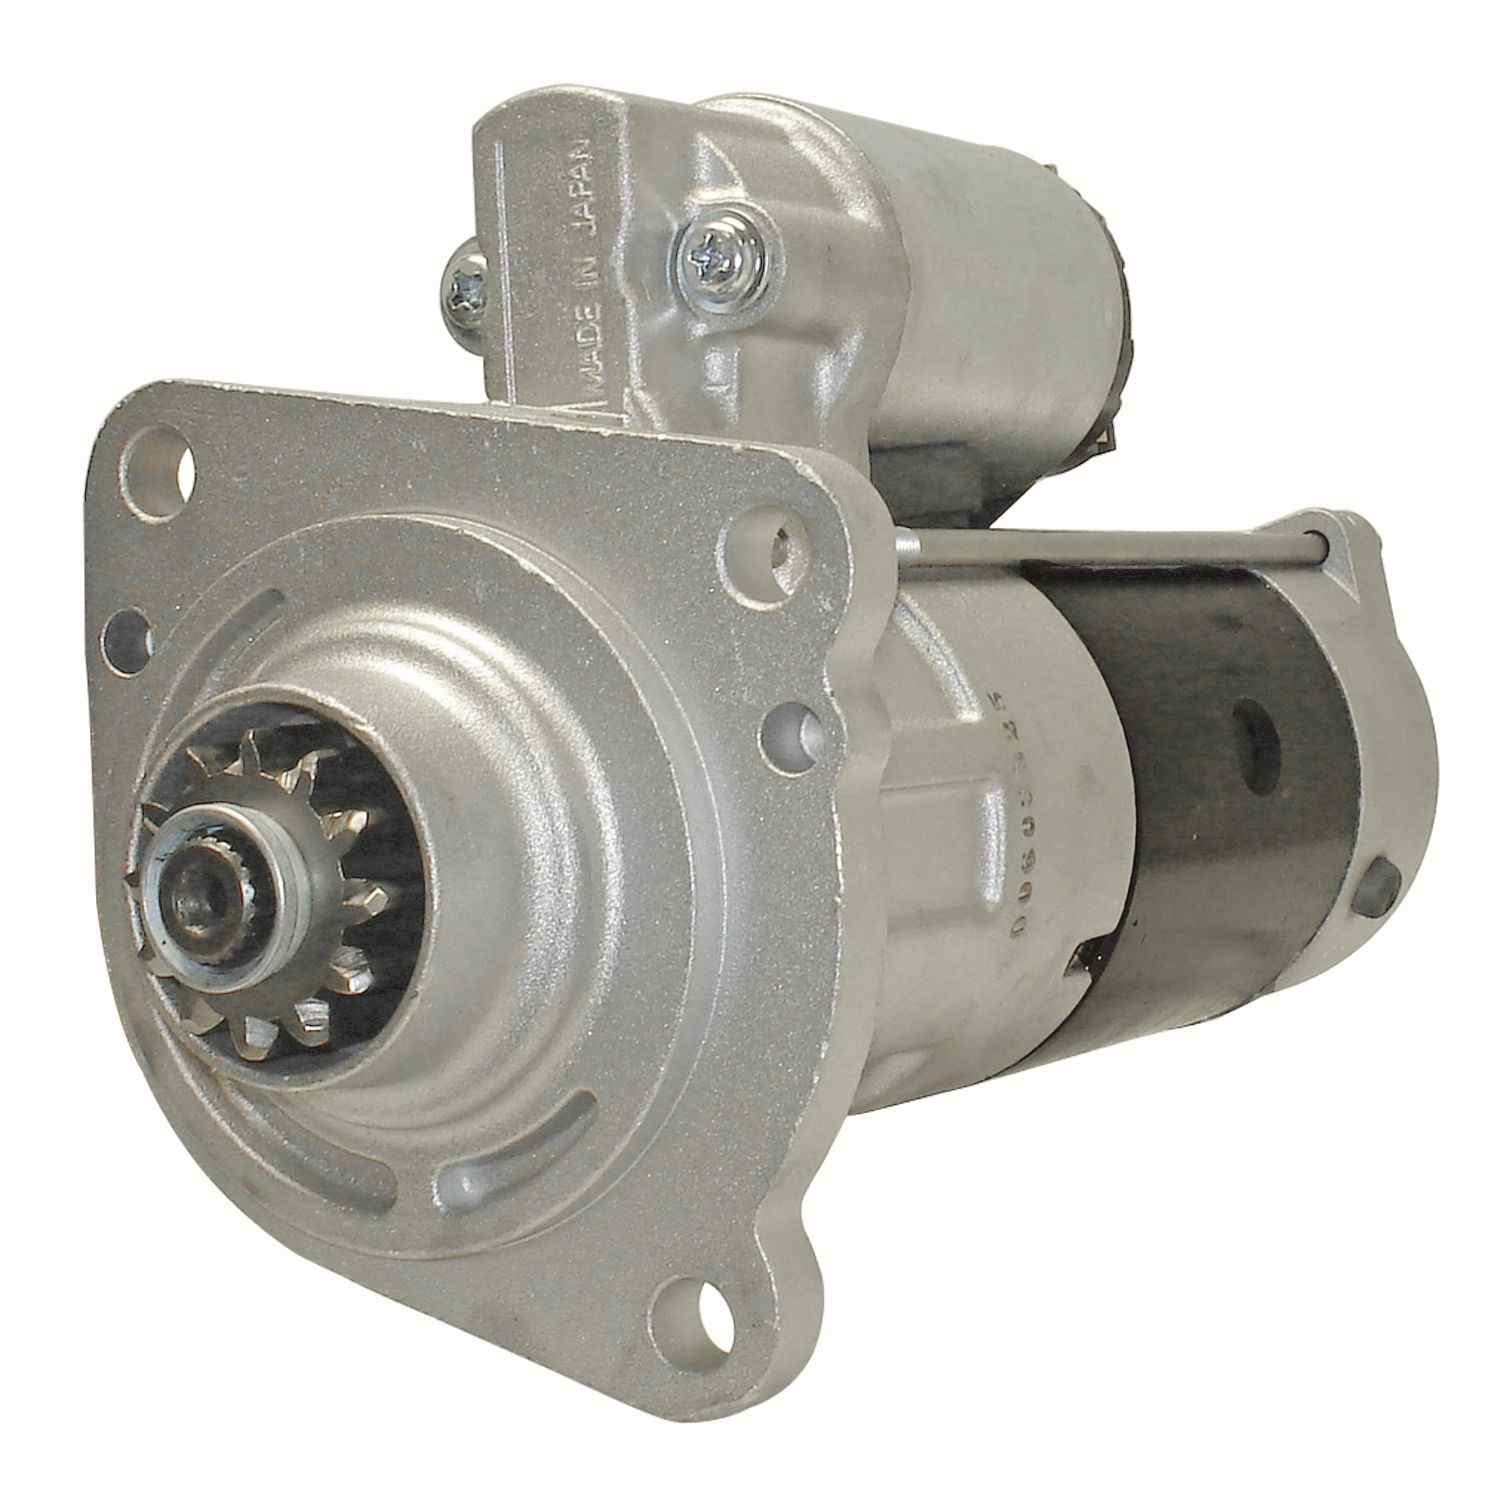 ACDELCO GOLD/PROFESSIONAL - Reman Starter Motor - DCC 336-1635A